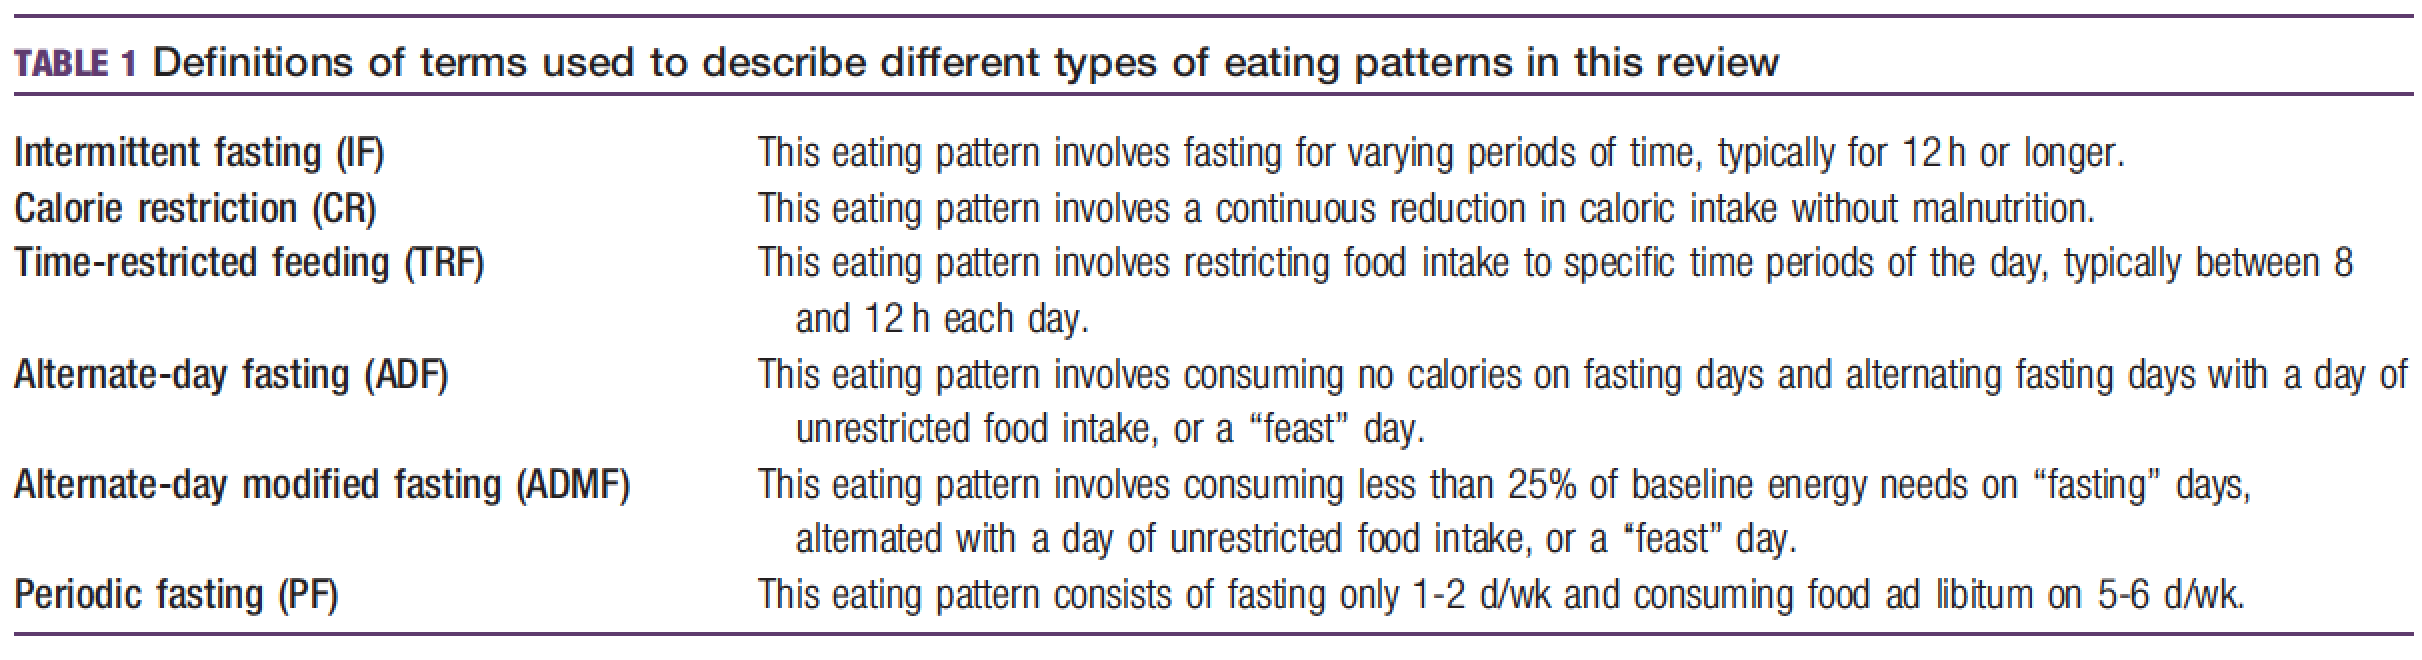 Table 1. Definitions of Different Types of Eating Patterns .  Reference: Anton, SD; 2018 Obesity